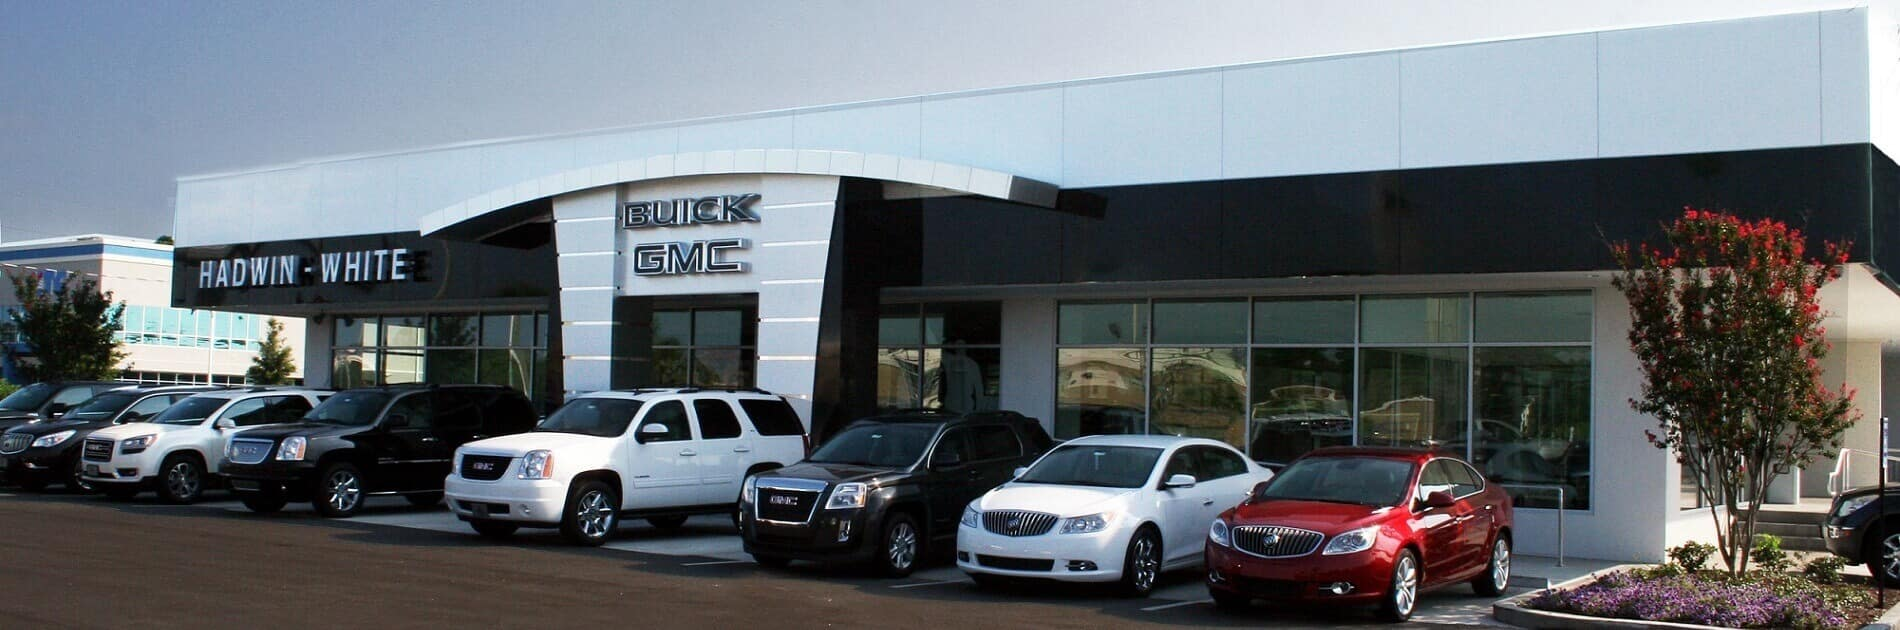 An exterior shot of a Buick GMC dealership building.